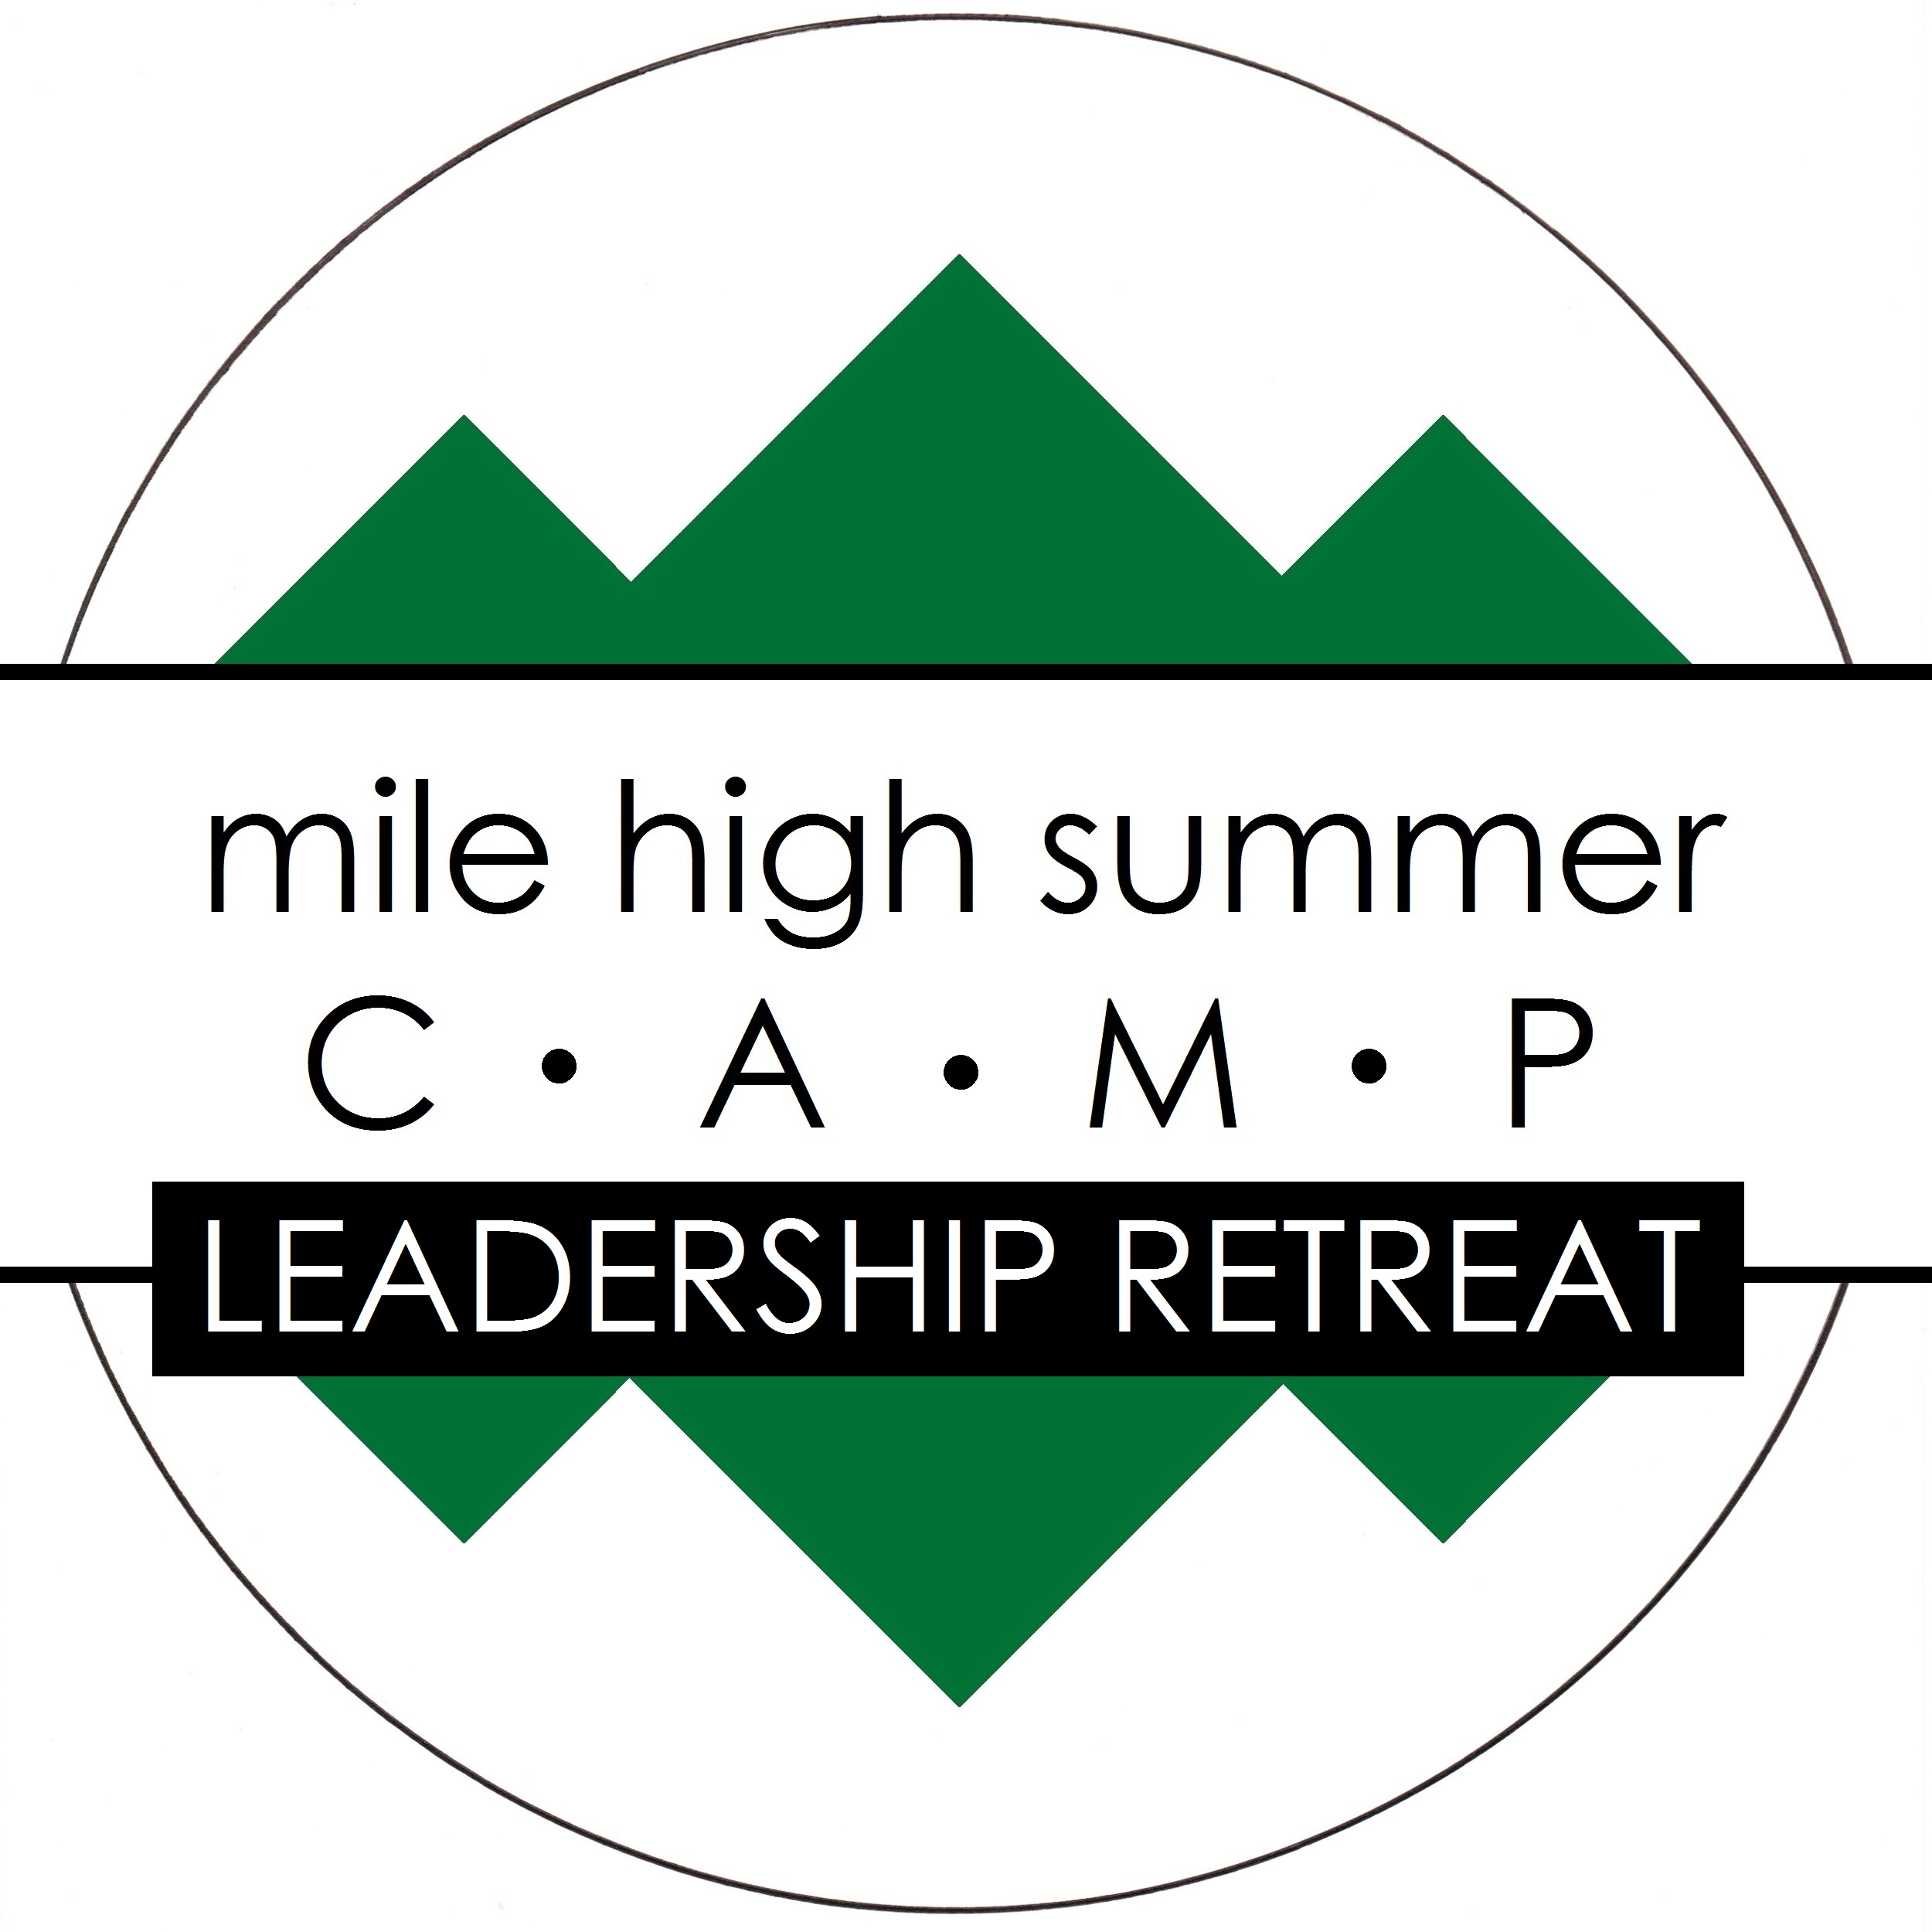 Leadership Retreat: Mile High Summer Camp